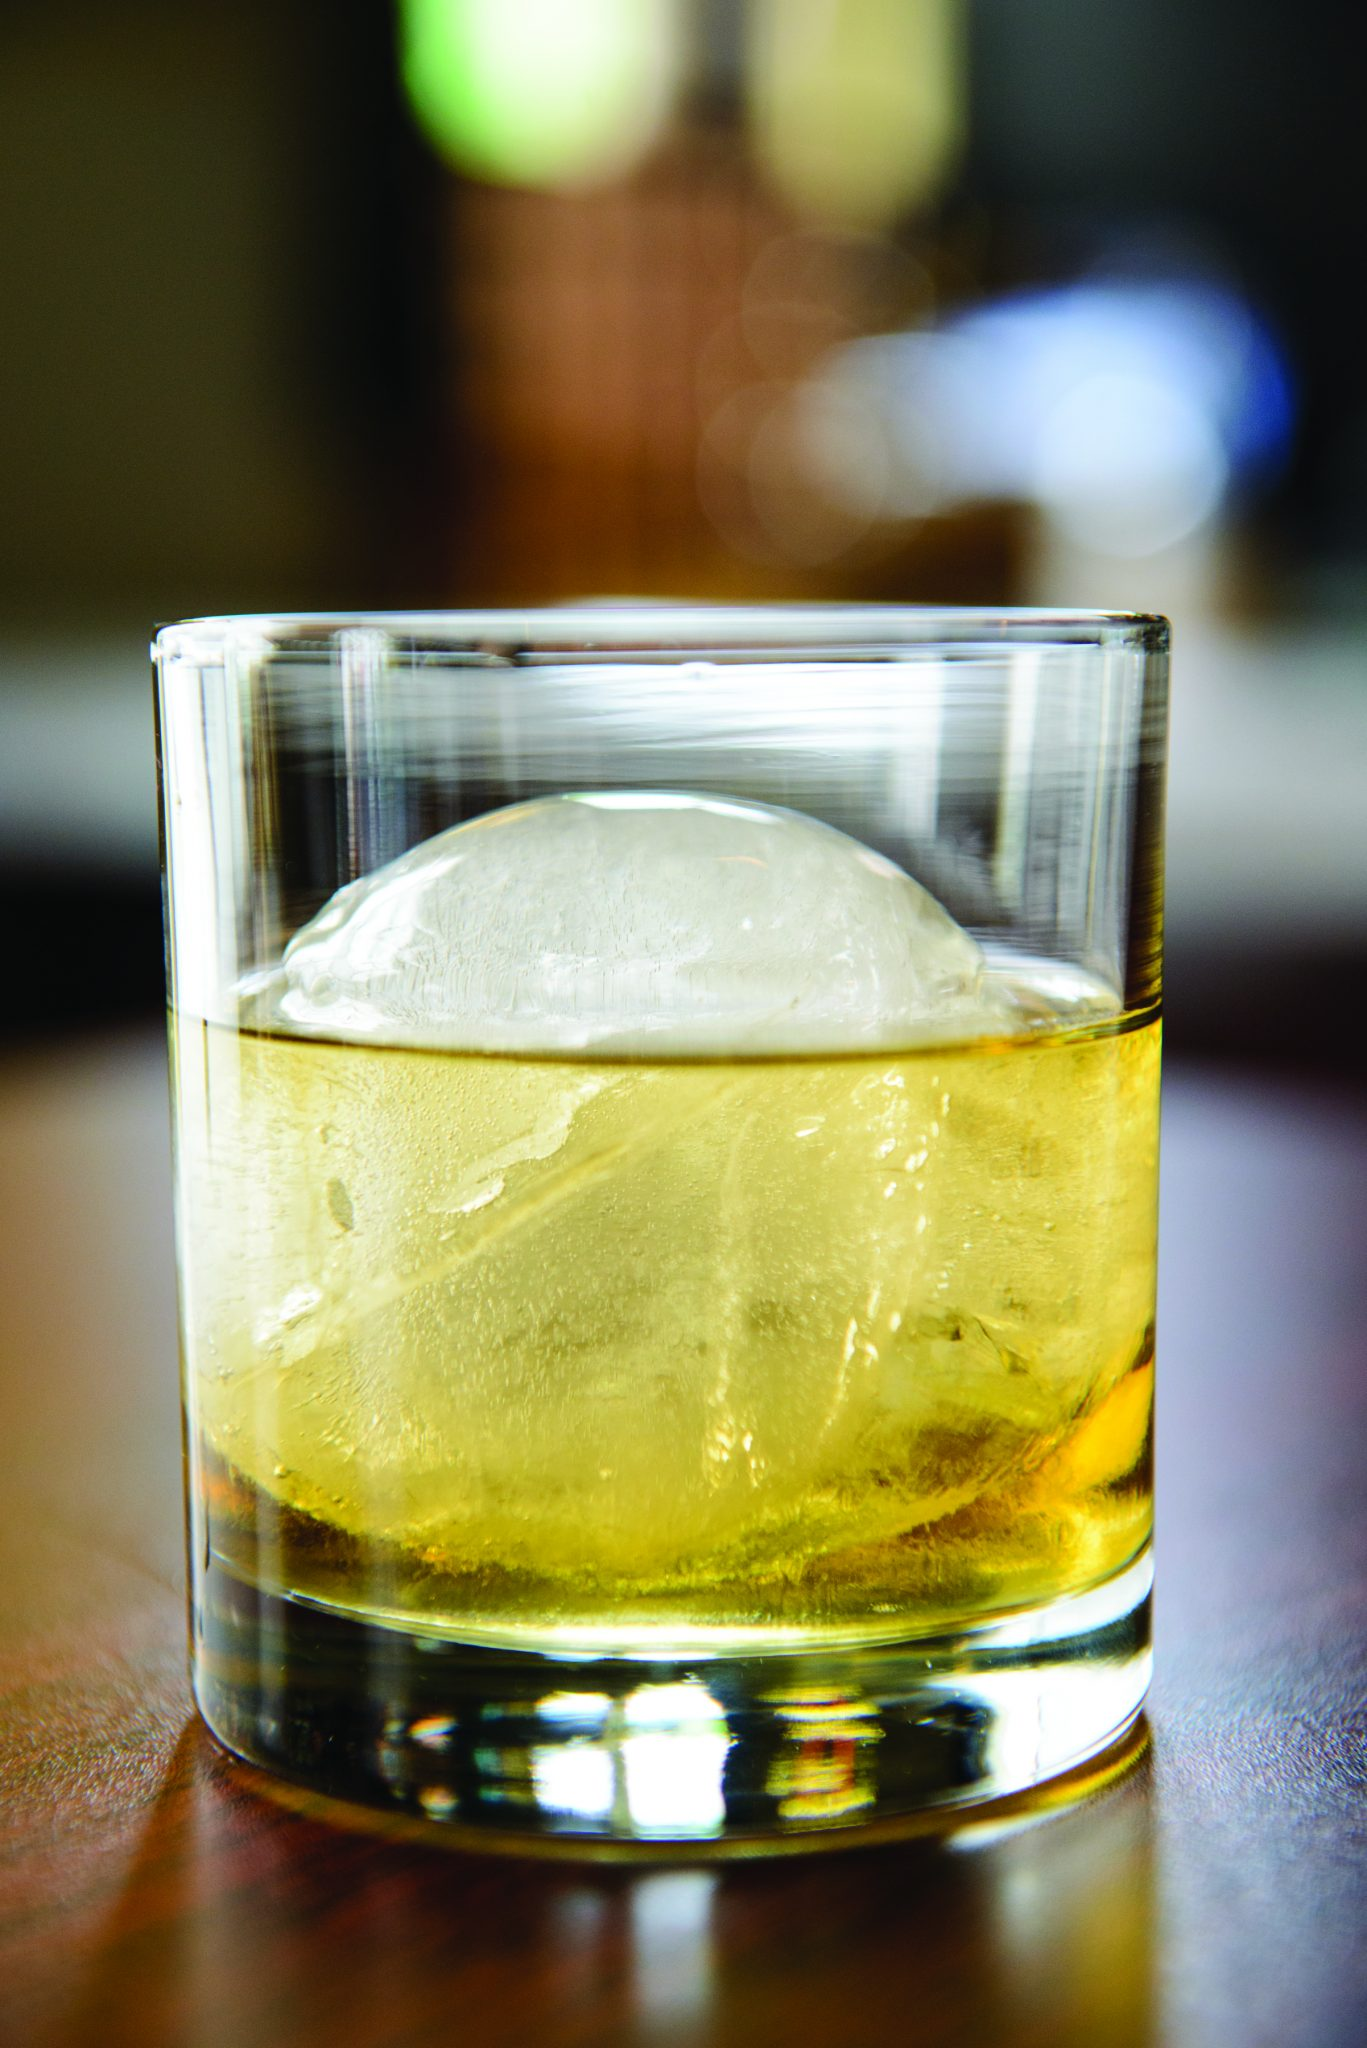 Whiskey in a glass tumbler with a large ice ball